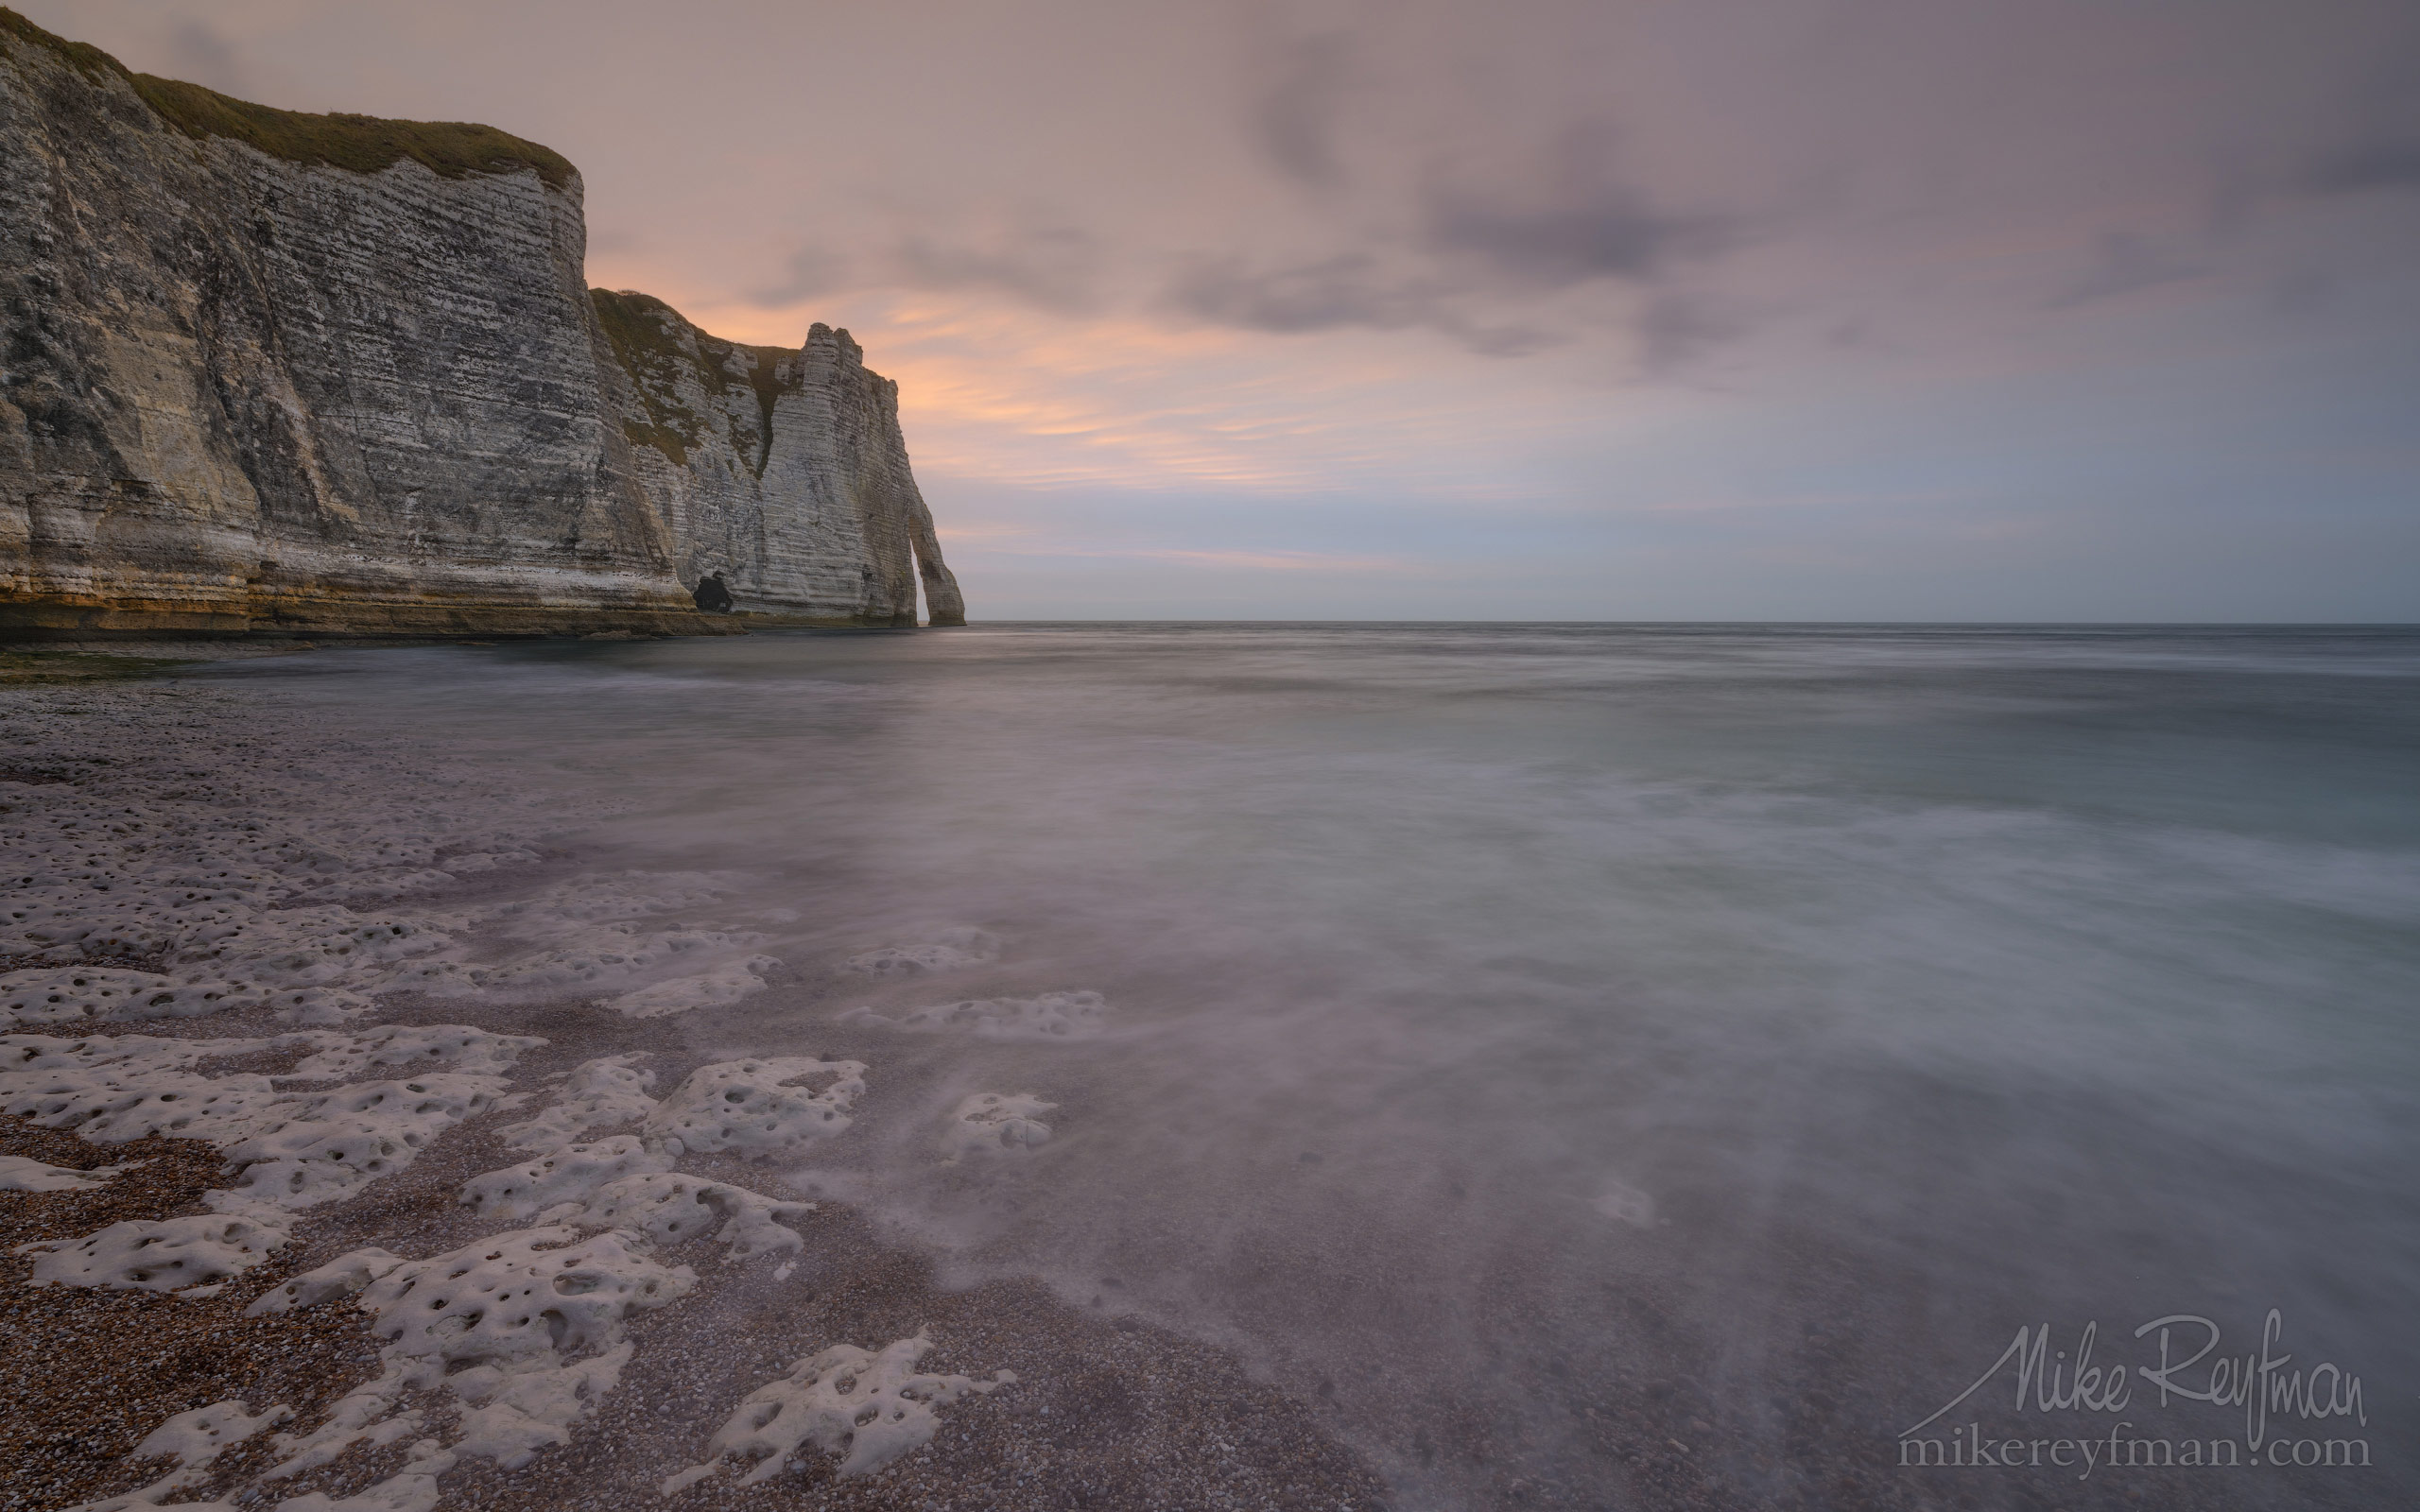 Arch Porte d'Aval at sunset. Cote d'Albatre – The Alabaster Coast. Ertretat, Normandy, France ET1-MR50A0516 - White Chalk Cliffs and Arches of Alabaster Coast. Etretat, Upper Normandy, France - Mike Reyfman Photography